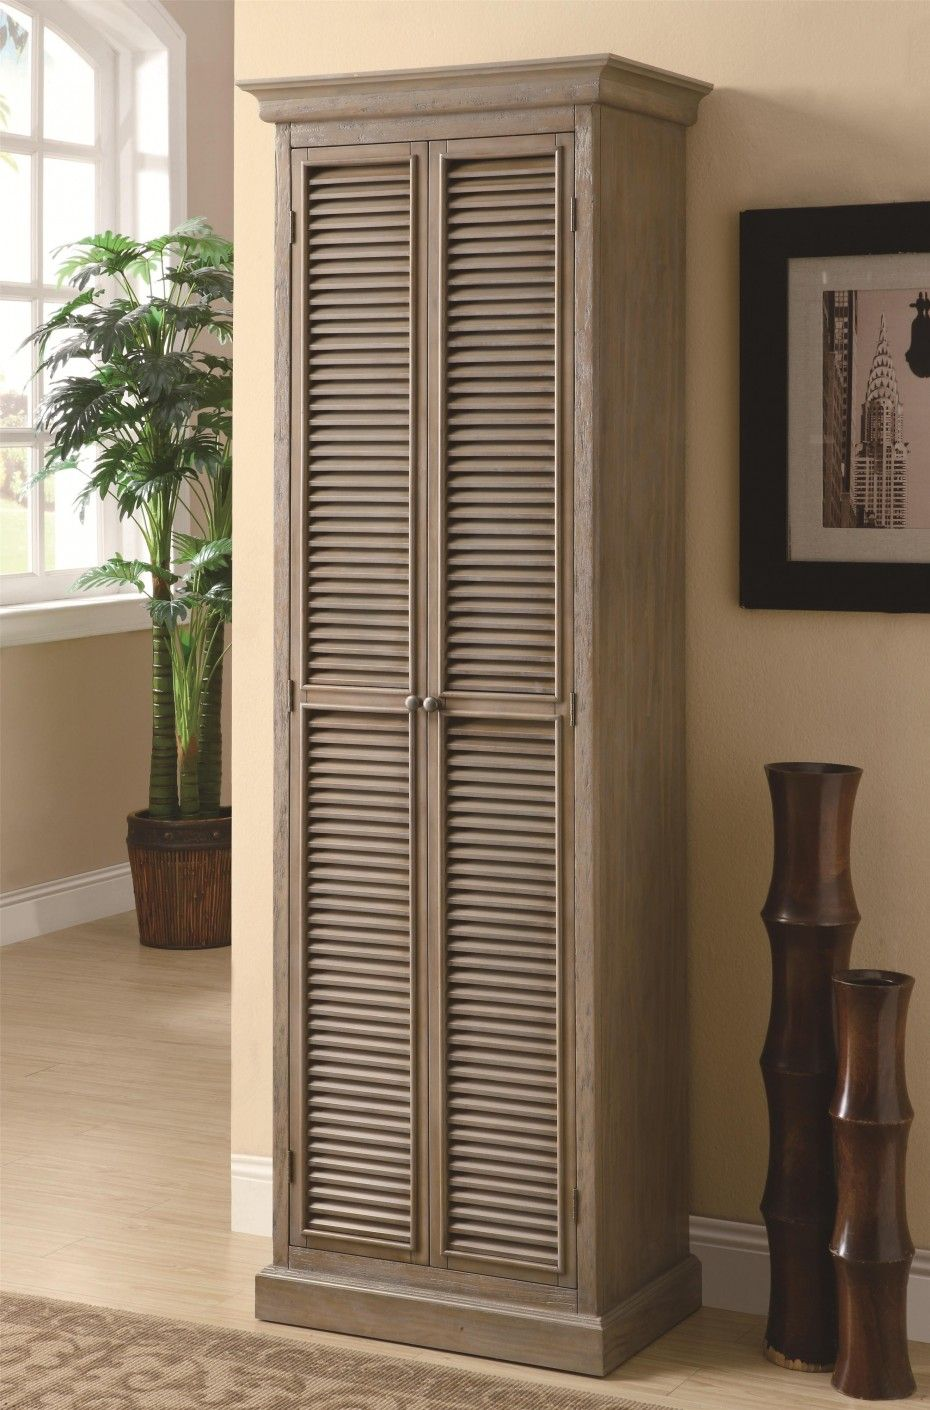 Unpolished Shutter Door Tall Storage Cabinet Placed On Cream